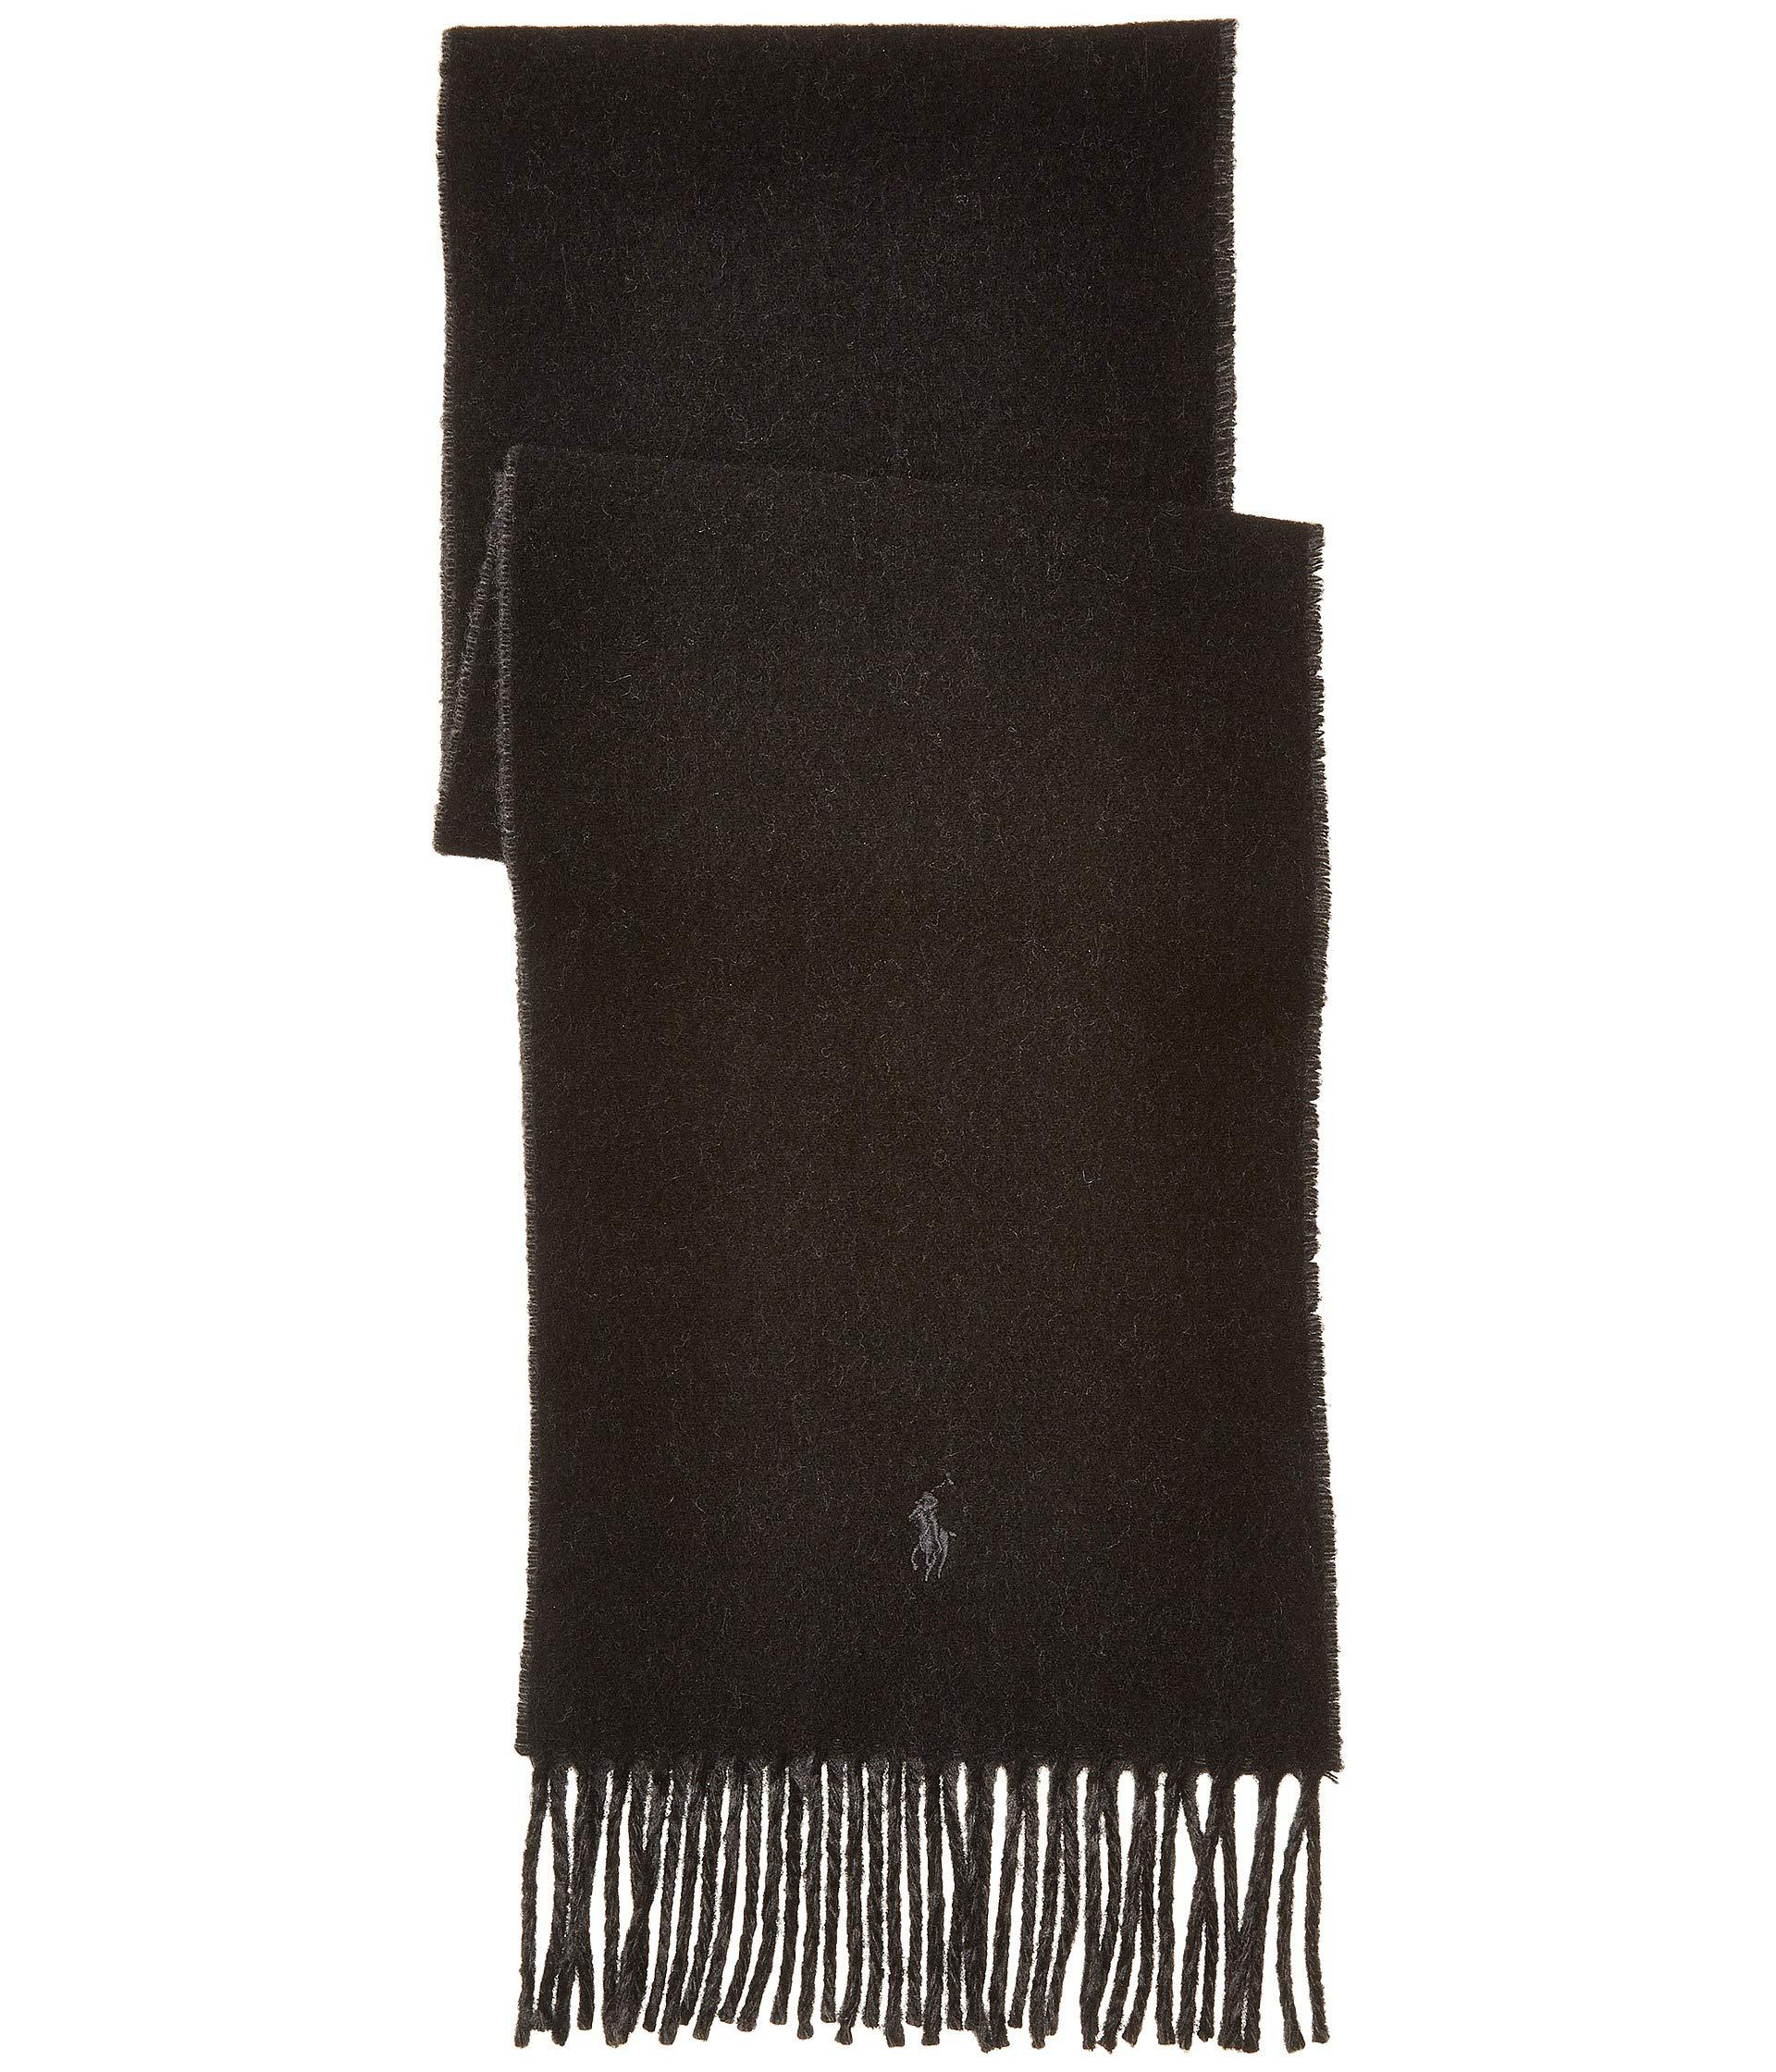 ae36cf056279 Lyst - Polo Ralph Lauren Classic Reversible Scarf (black charcoal) Scarves  in Black for Men